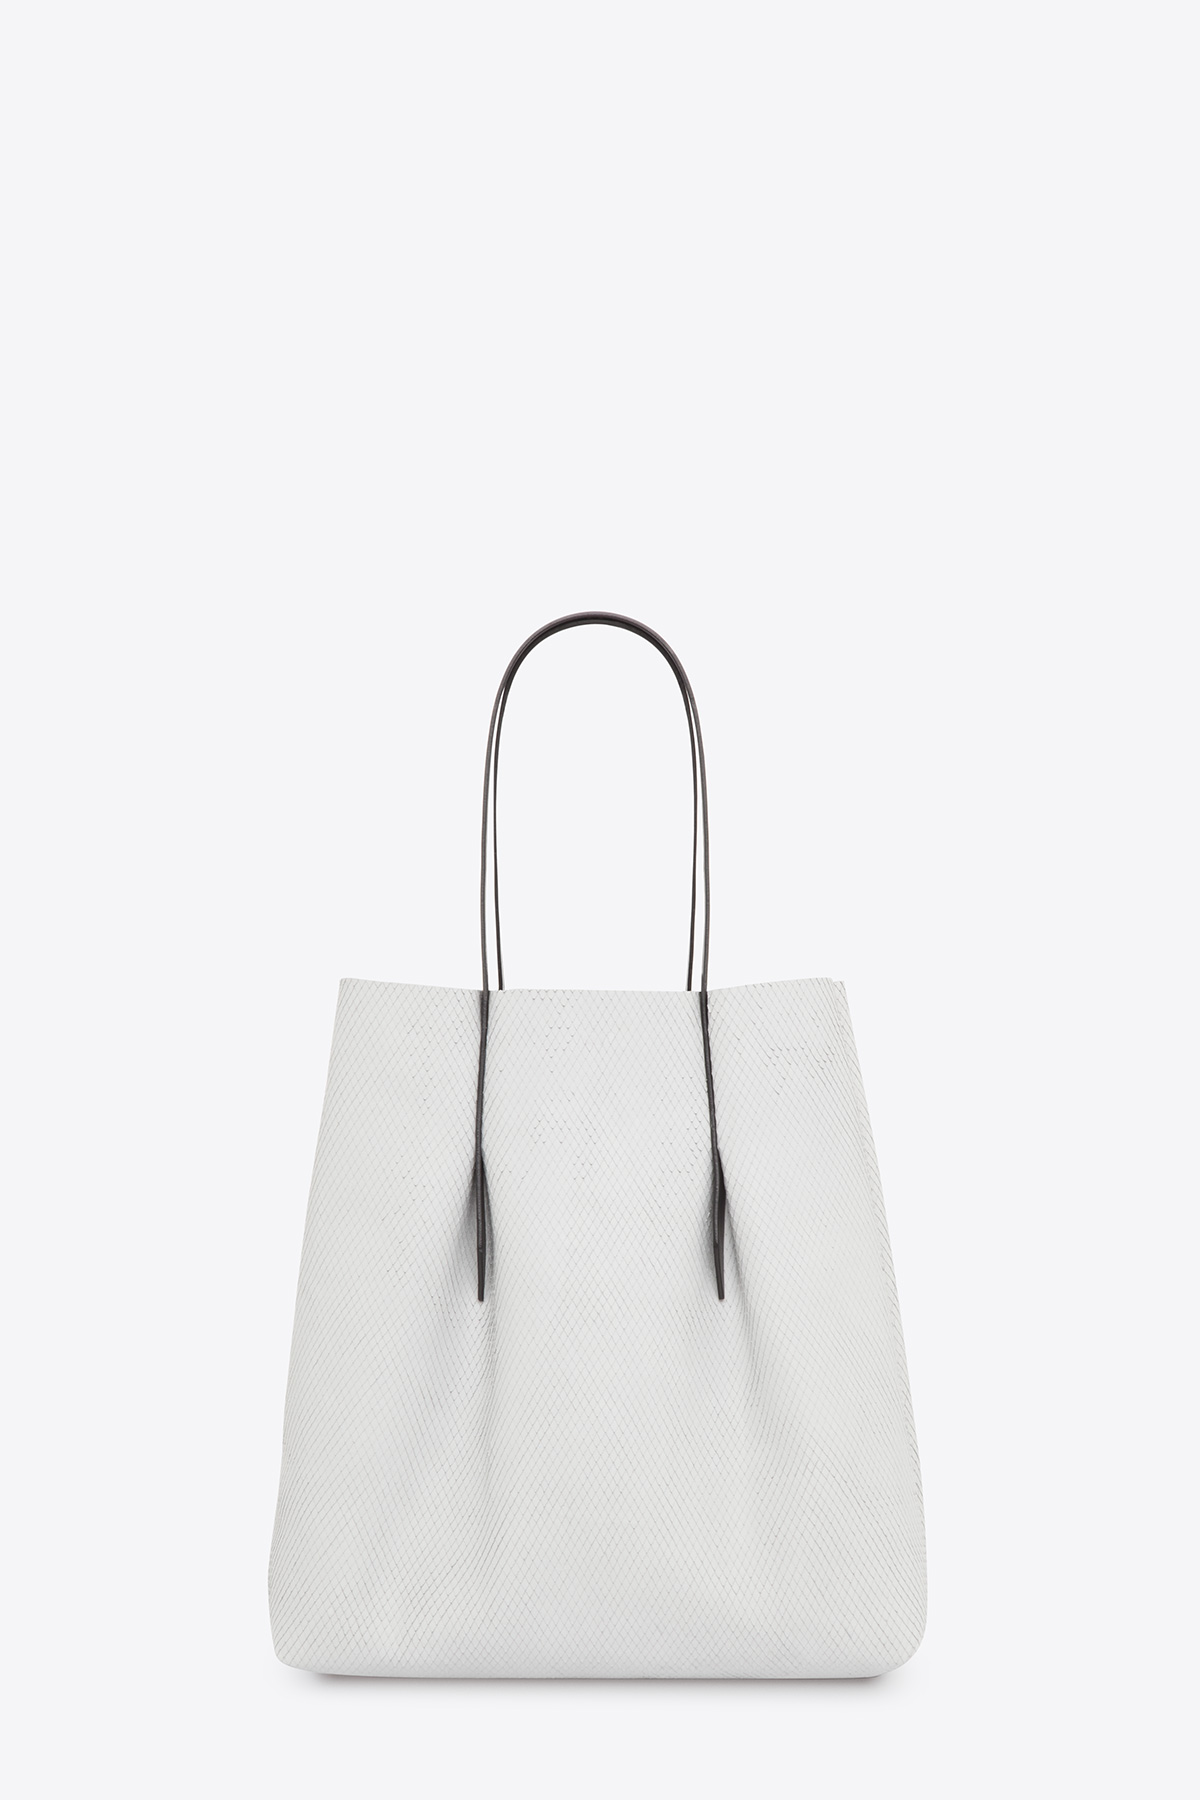 dclr006-shoppingbag-a22-backsnakefoggrey-back